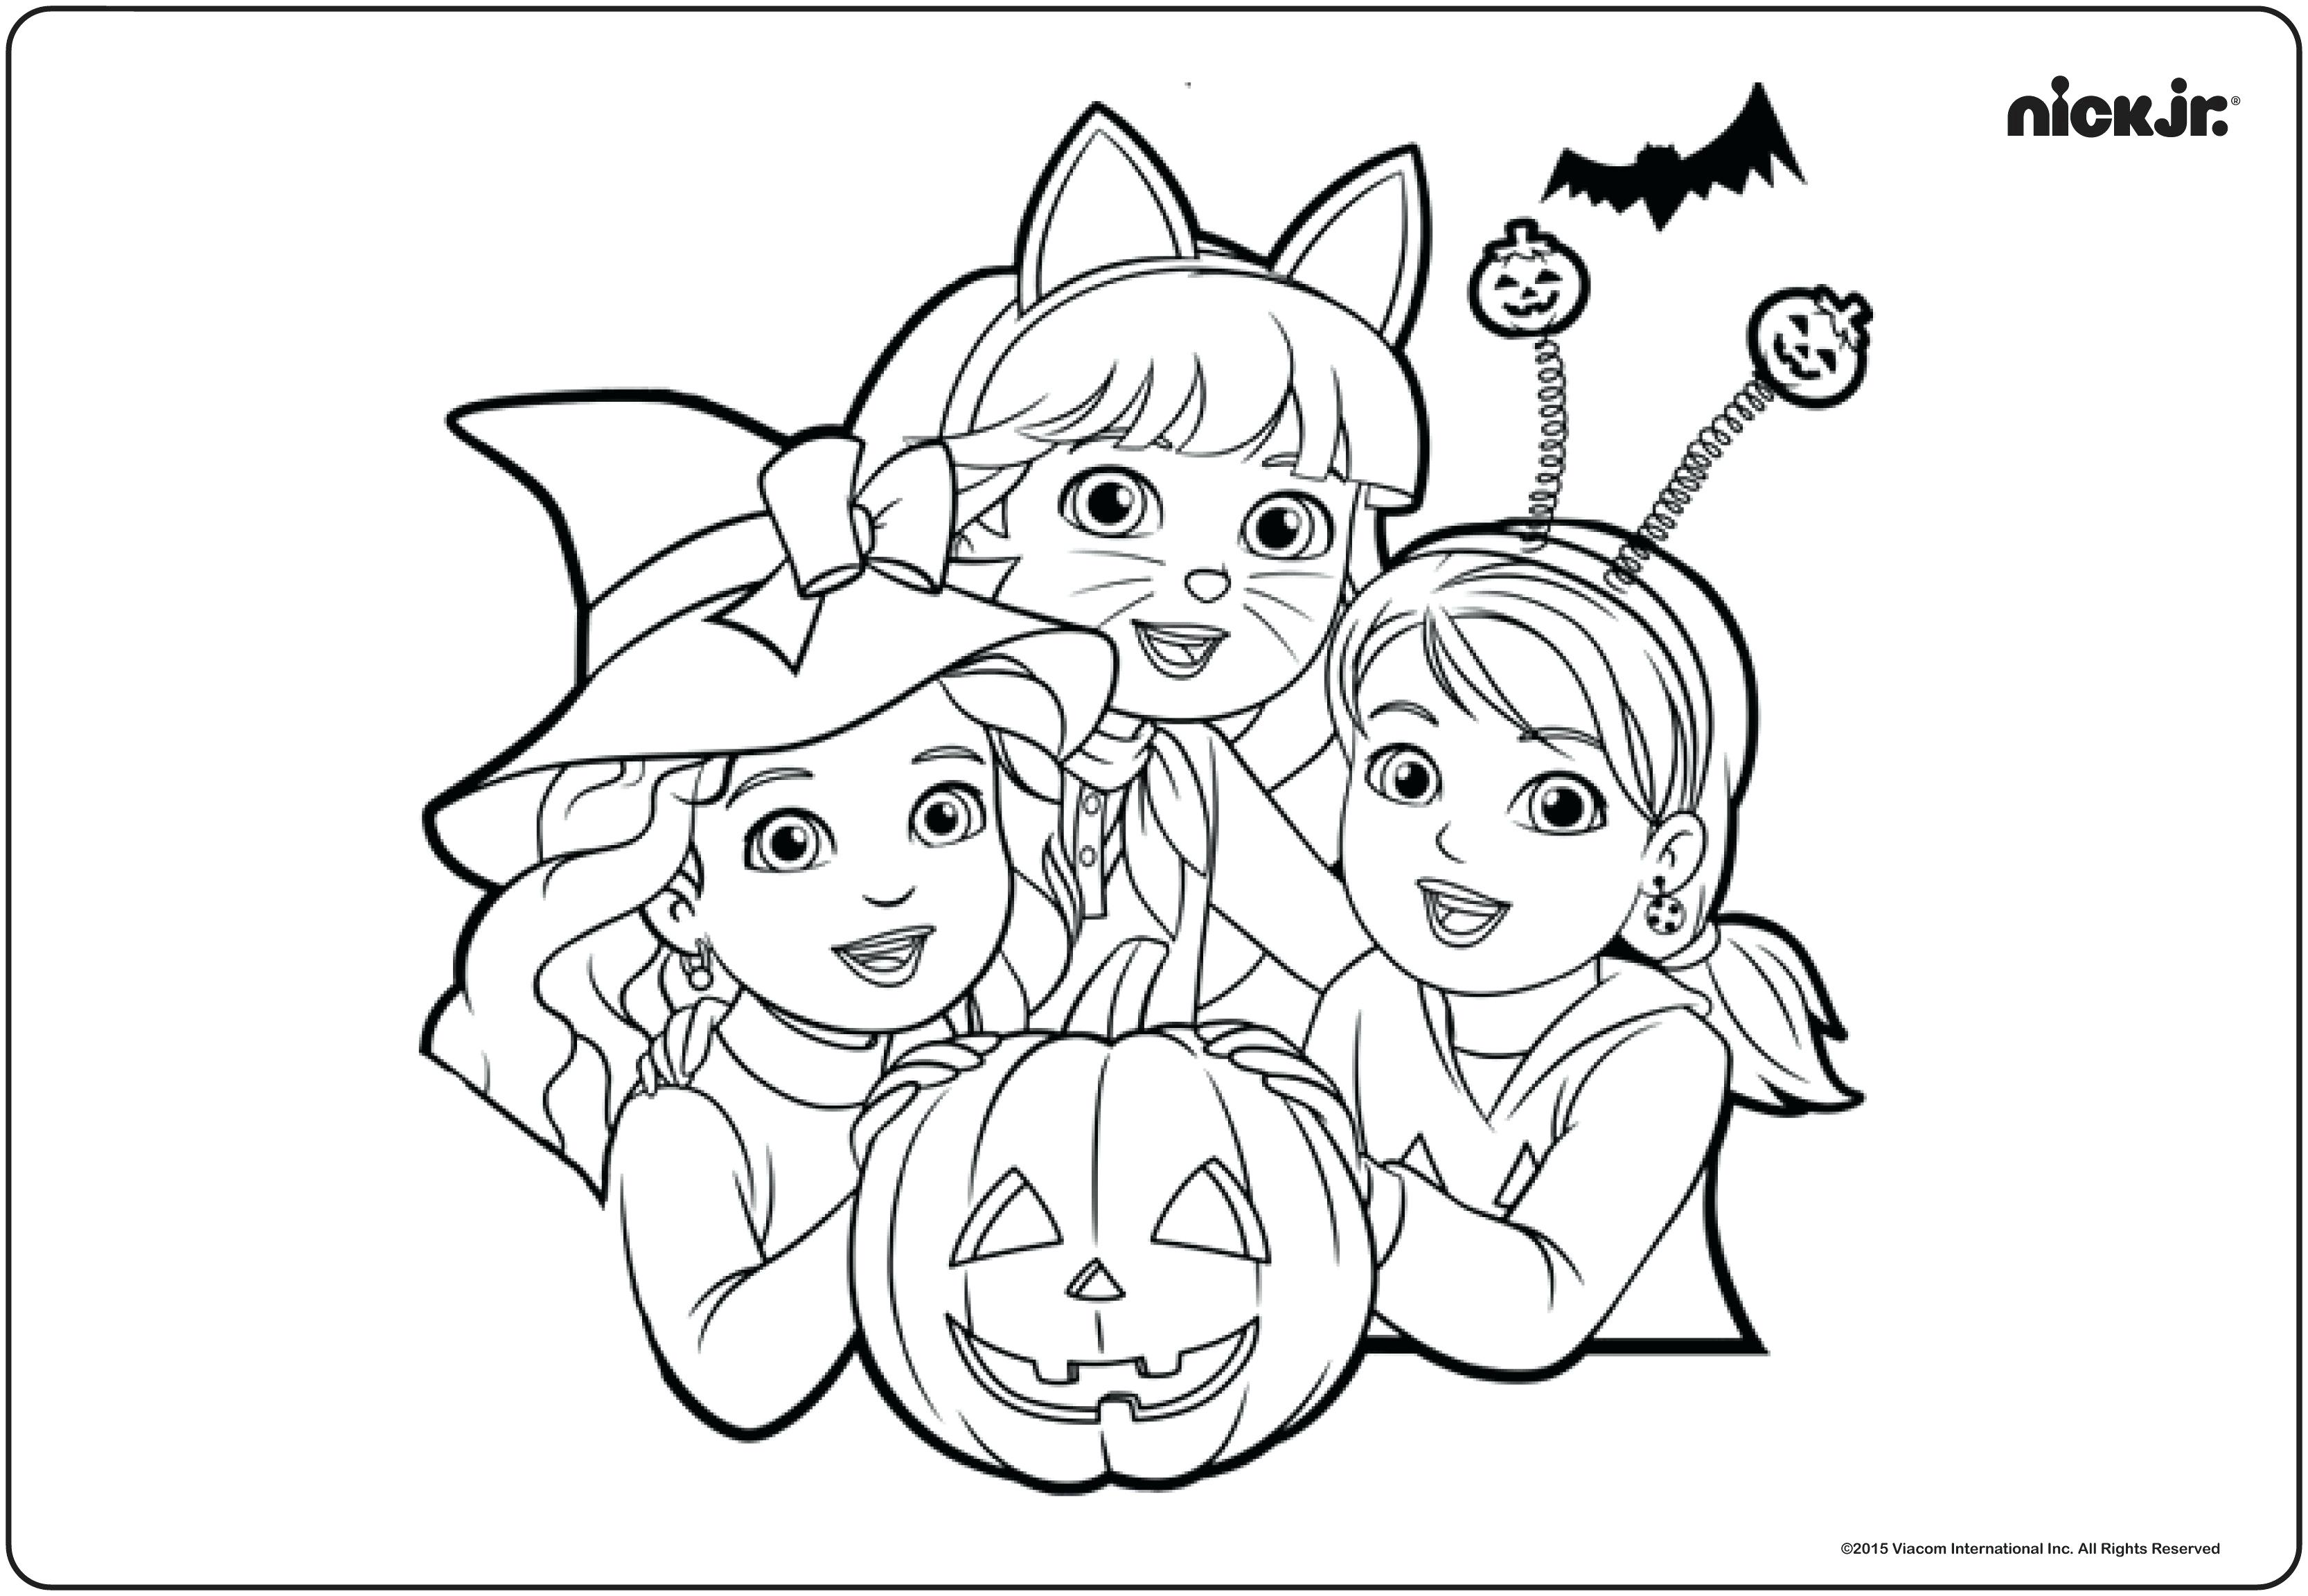 3332x2304 Nick Jr Coloring Pages Scary Pumpkins Halloween Nickelodeon Top